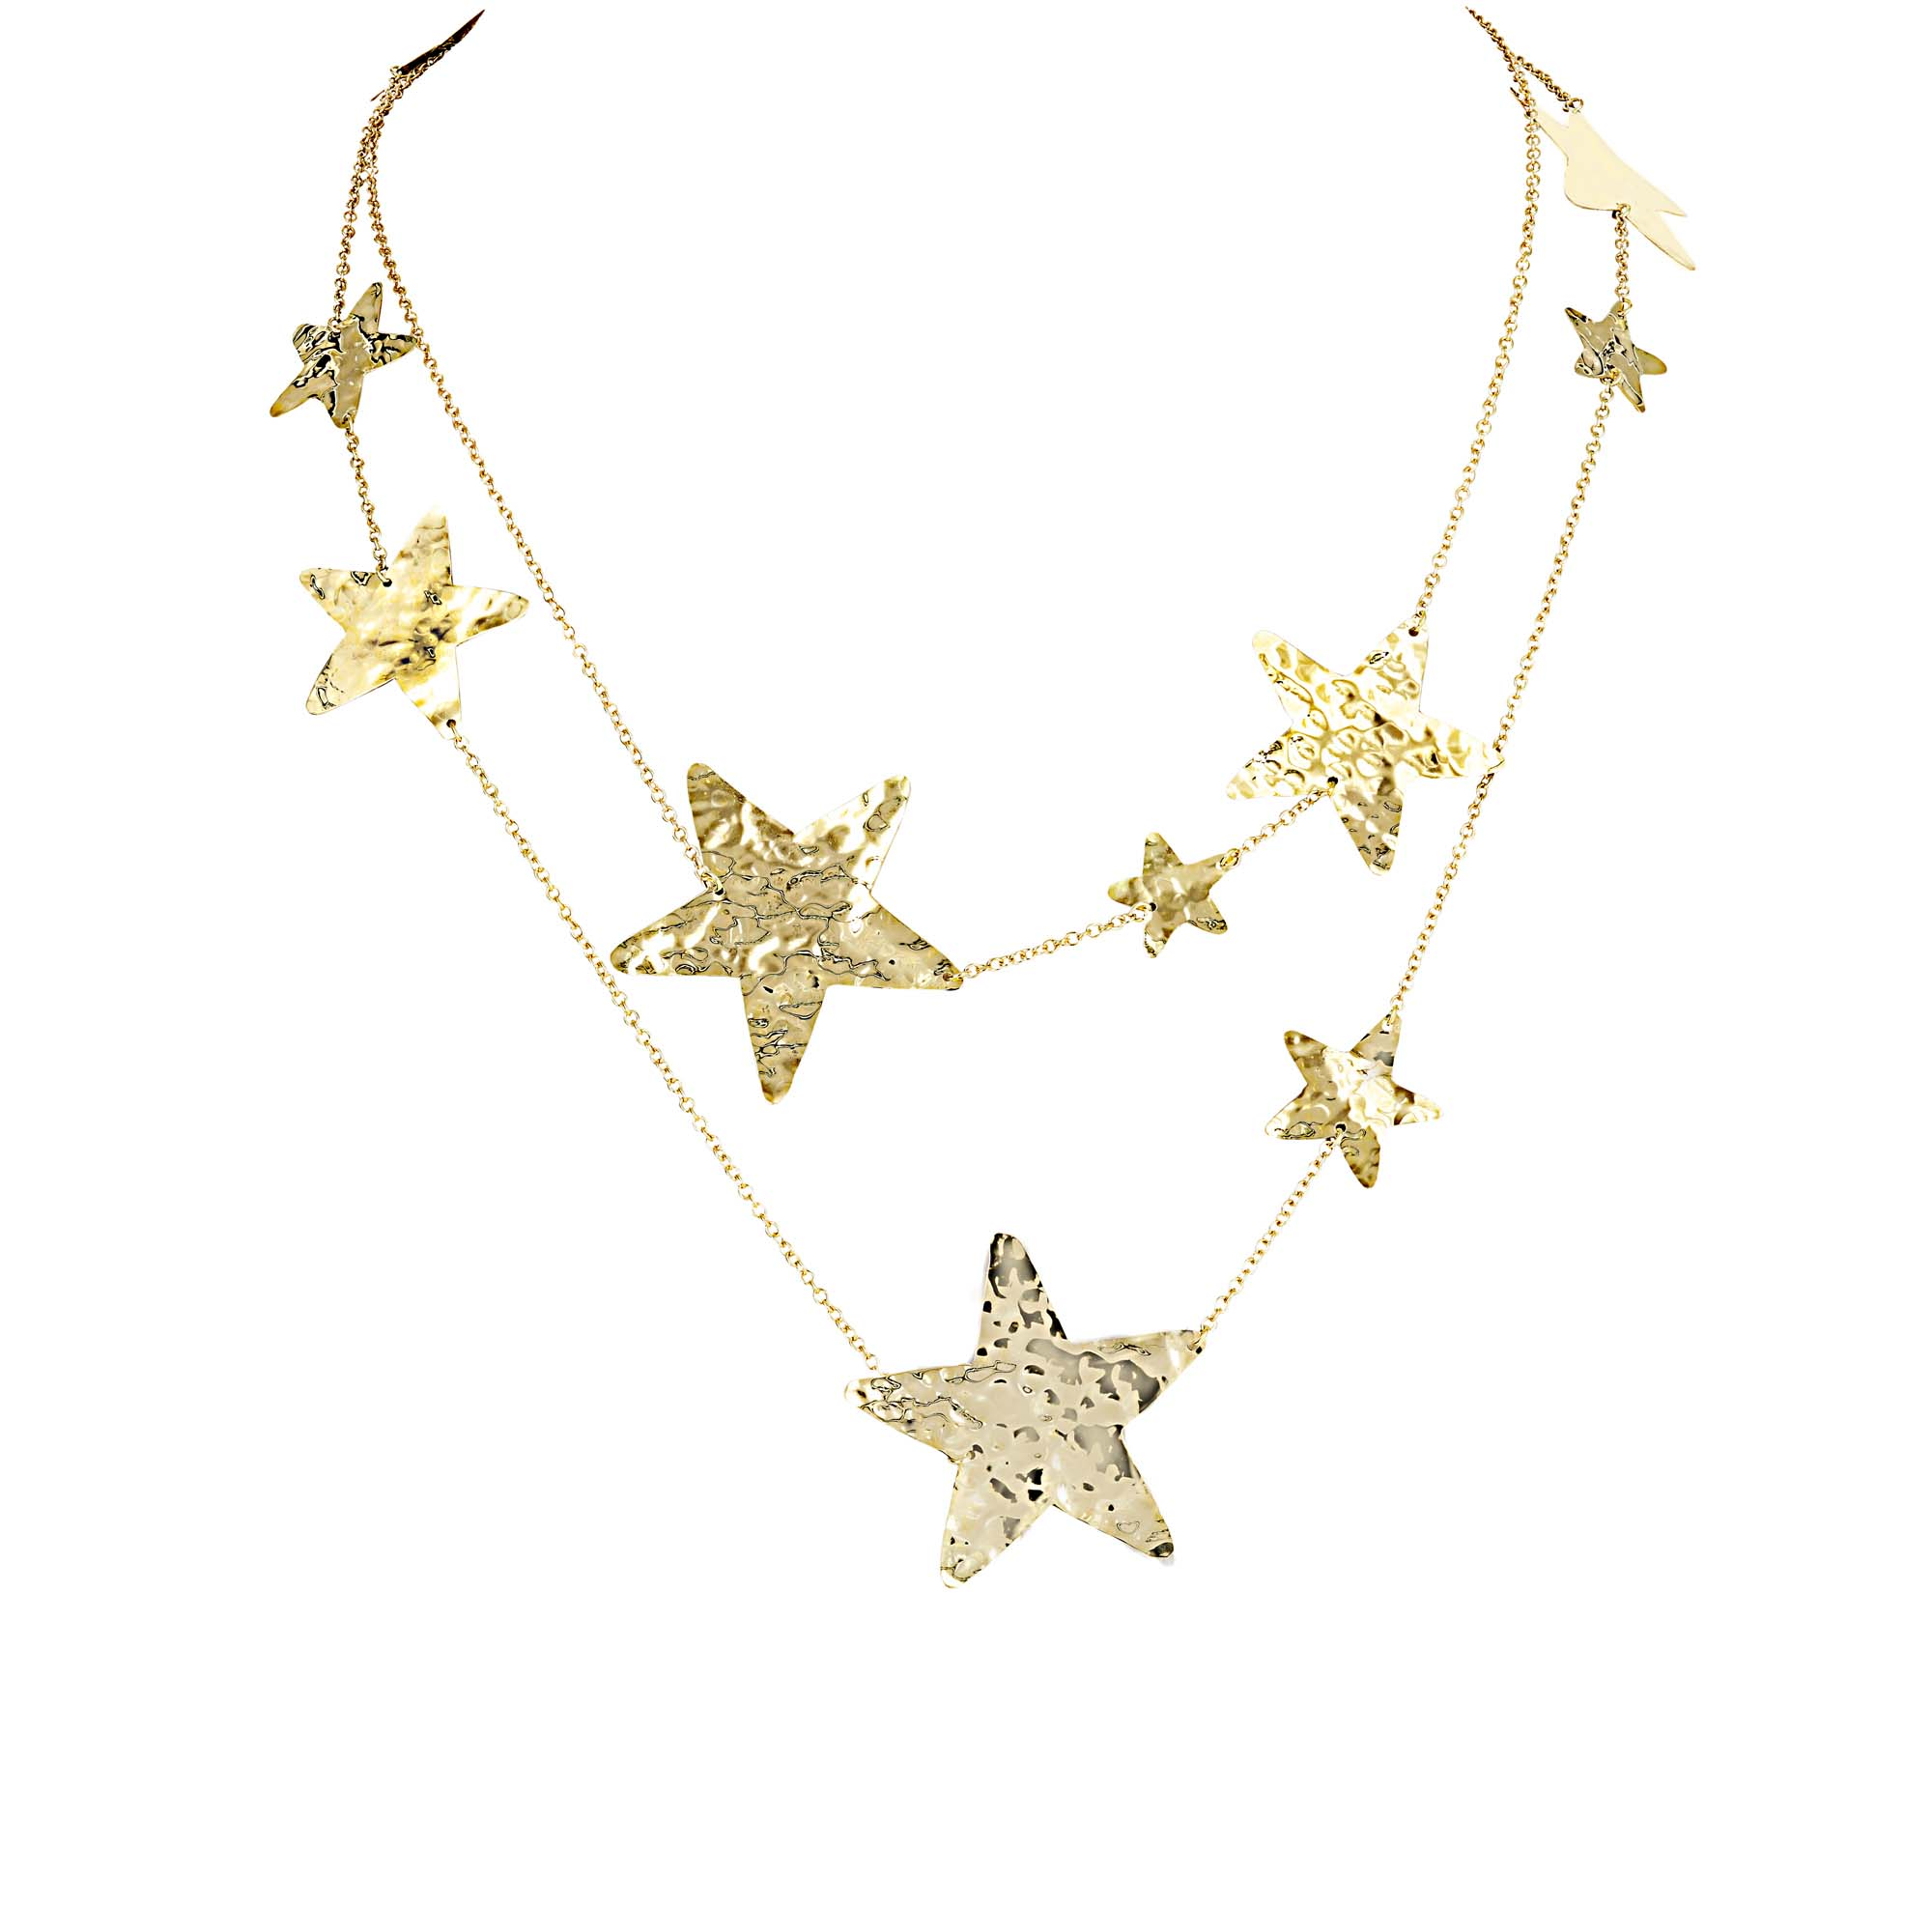 Marco Gerbella 18k Hammered Star Necklace